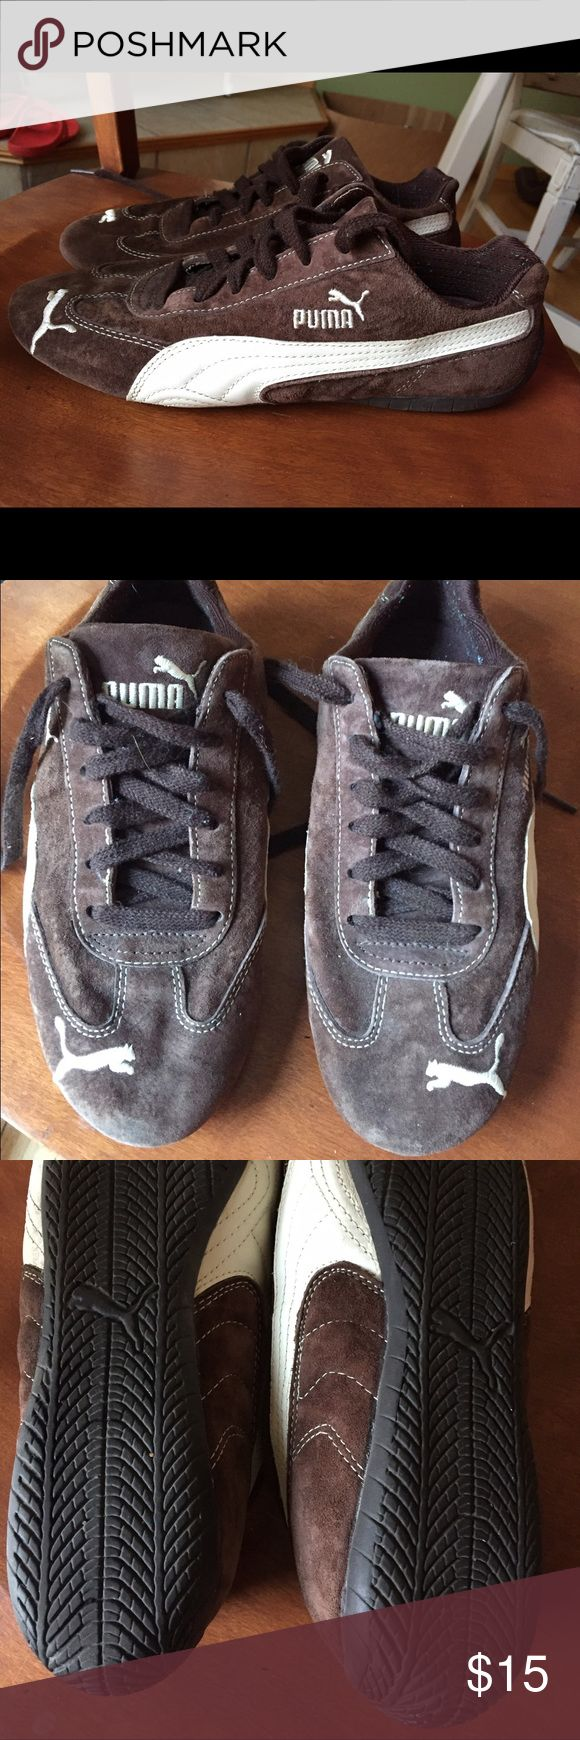 715 best puma womens shoes images on pinterest pumas shoes puma womens shoes puma brown suede tennis shoe puma brown suede tennis shoe size women size only worn a few times no wear and tear on outside nvjuhfo Choice Image